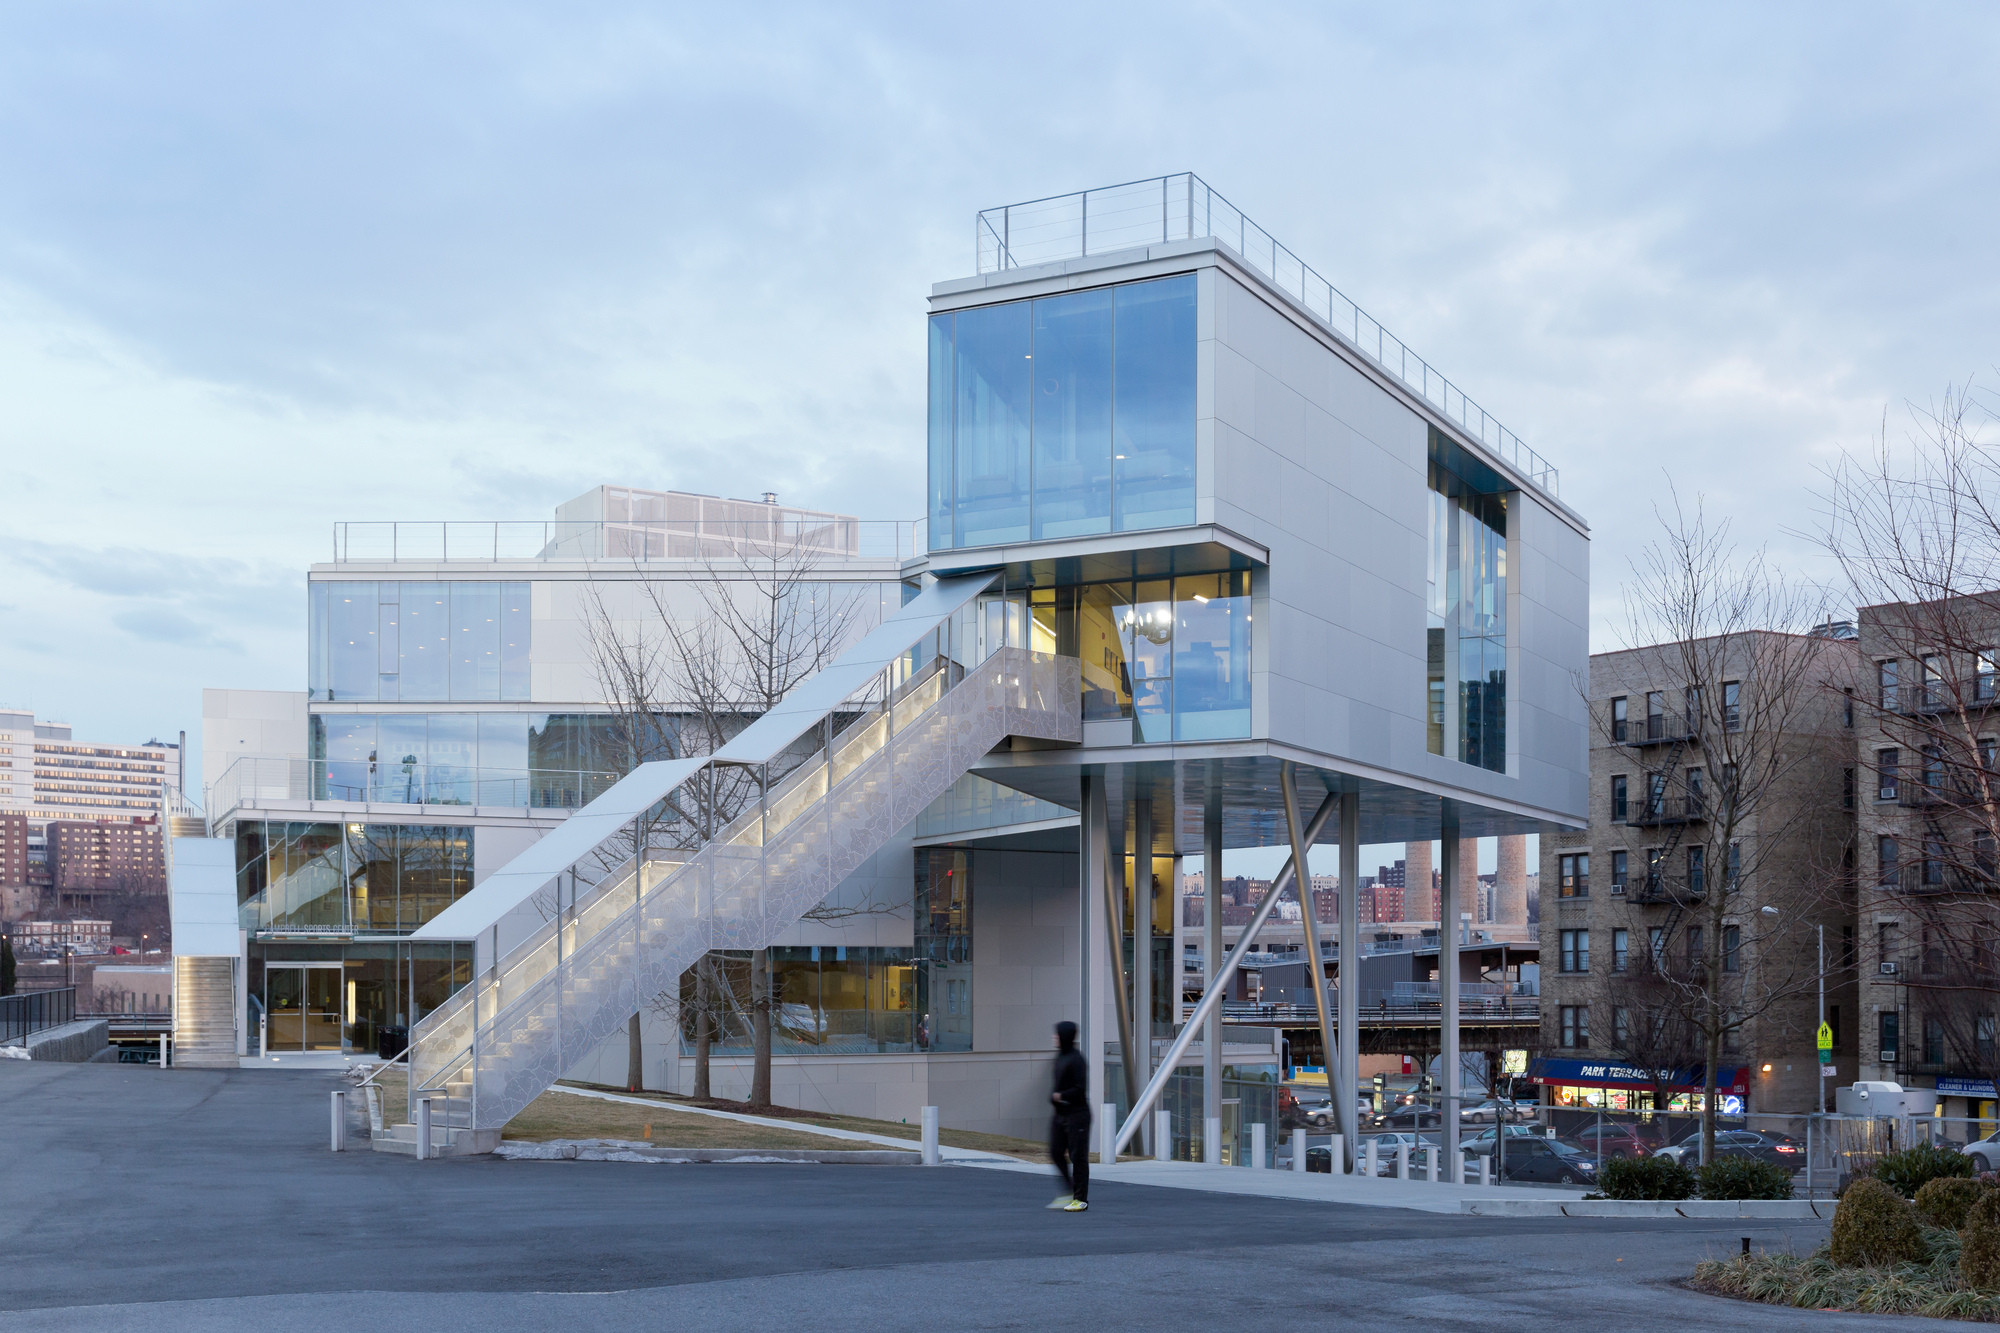 AIANY Announces 2014 Design Award Winners, Campbell Sports Center - Columbia University (New York, NY) / Steven Holl Architects © Iwan Baan